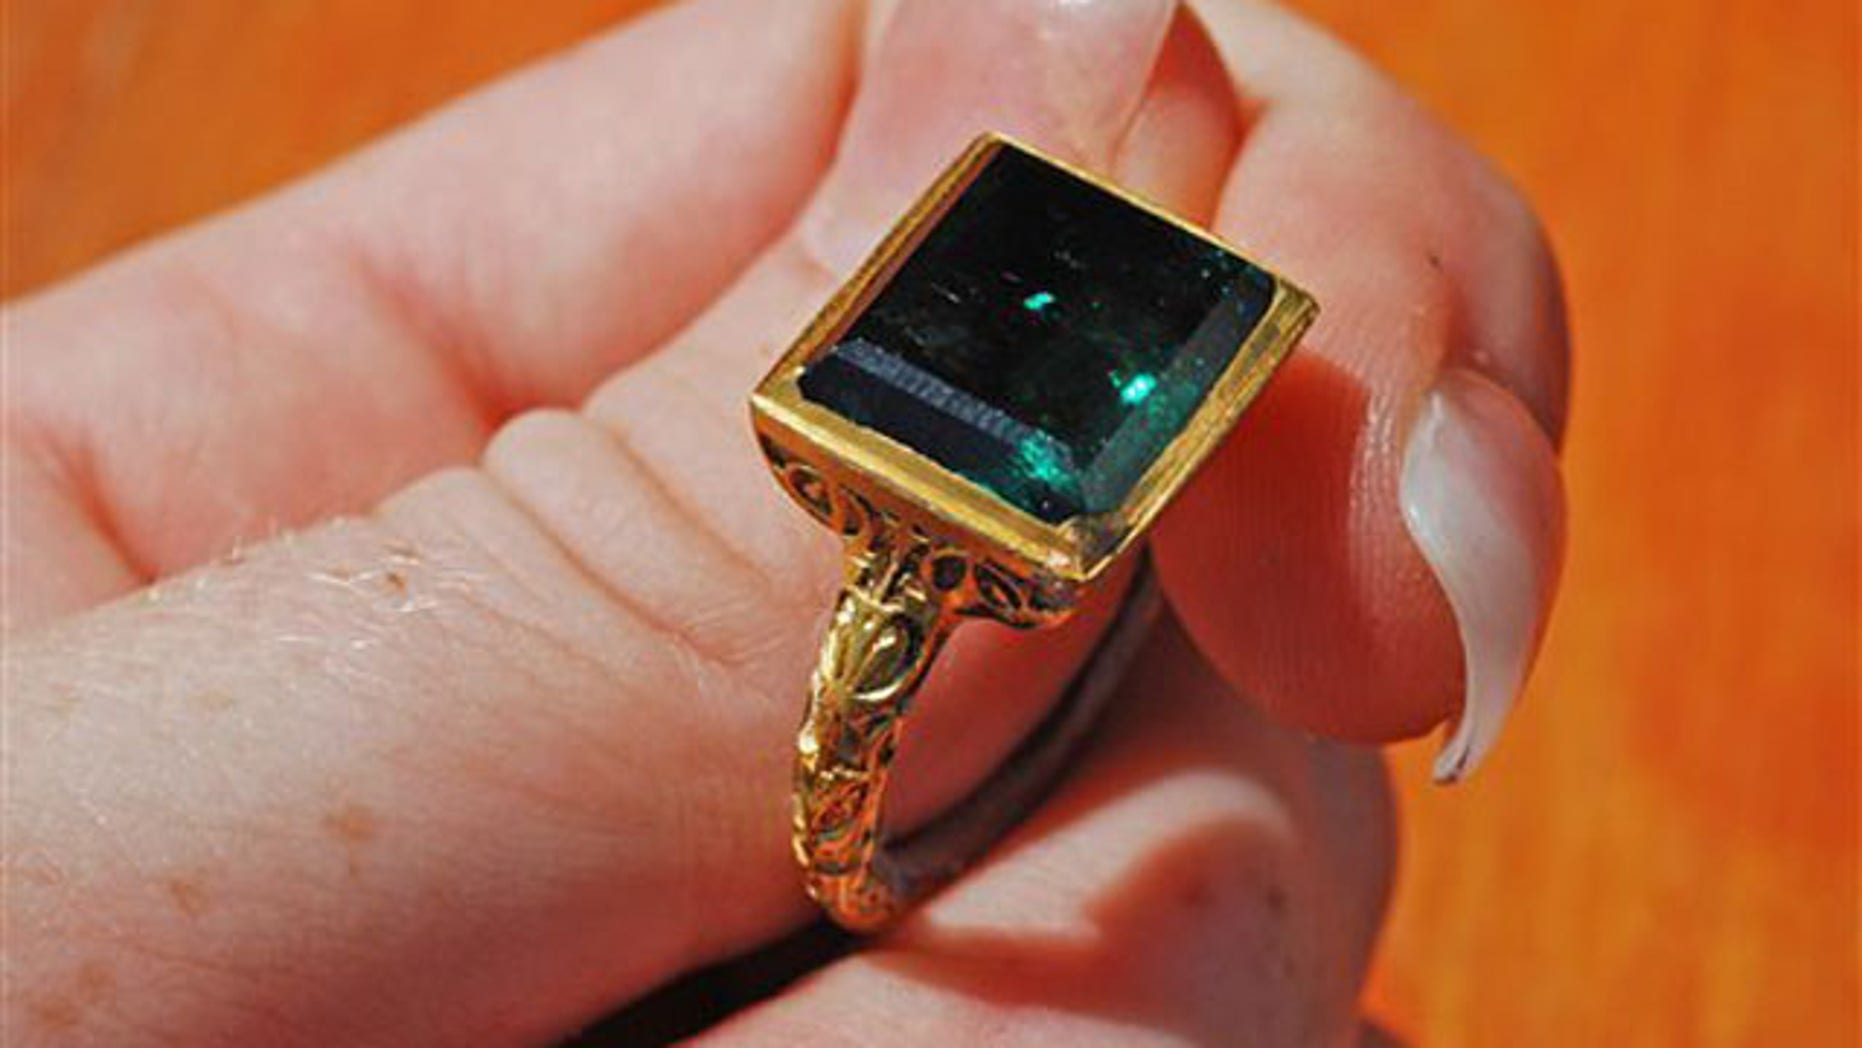 In this photo released by the Florida Keys News Bureau, an ancient gold ring with a rectangular cut emerald, believed to be from the Spanish galleon Nuestra Senora de Atocha that sank off the Florida Keys during a 1622 hurricane, is displayed Thursday, July 23, 2011, about 35 miles west of Key West, Fla. Divers from Mel Fisher's Treasures, searching for the sterncastle of the Atocha, said they found the ring Thursday. Its estimated value is $500,000. (AP Photo/Florida Keys News Bureau, Sharon Wiley)